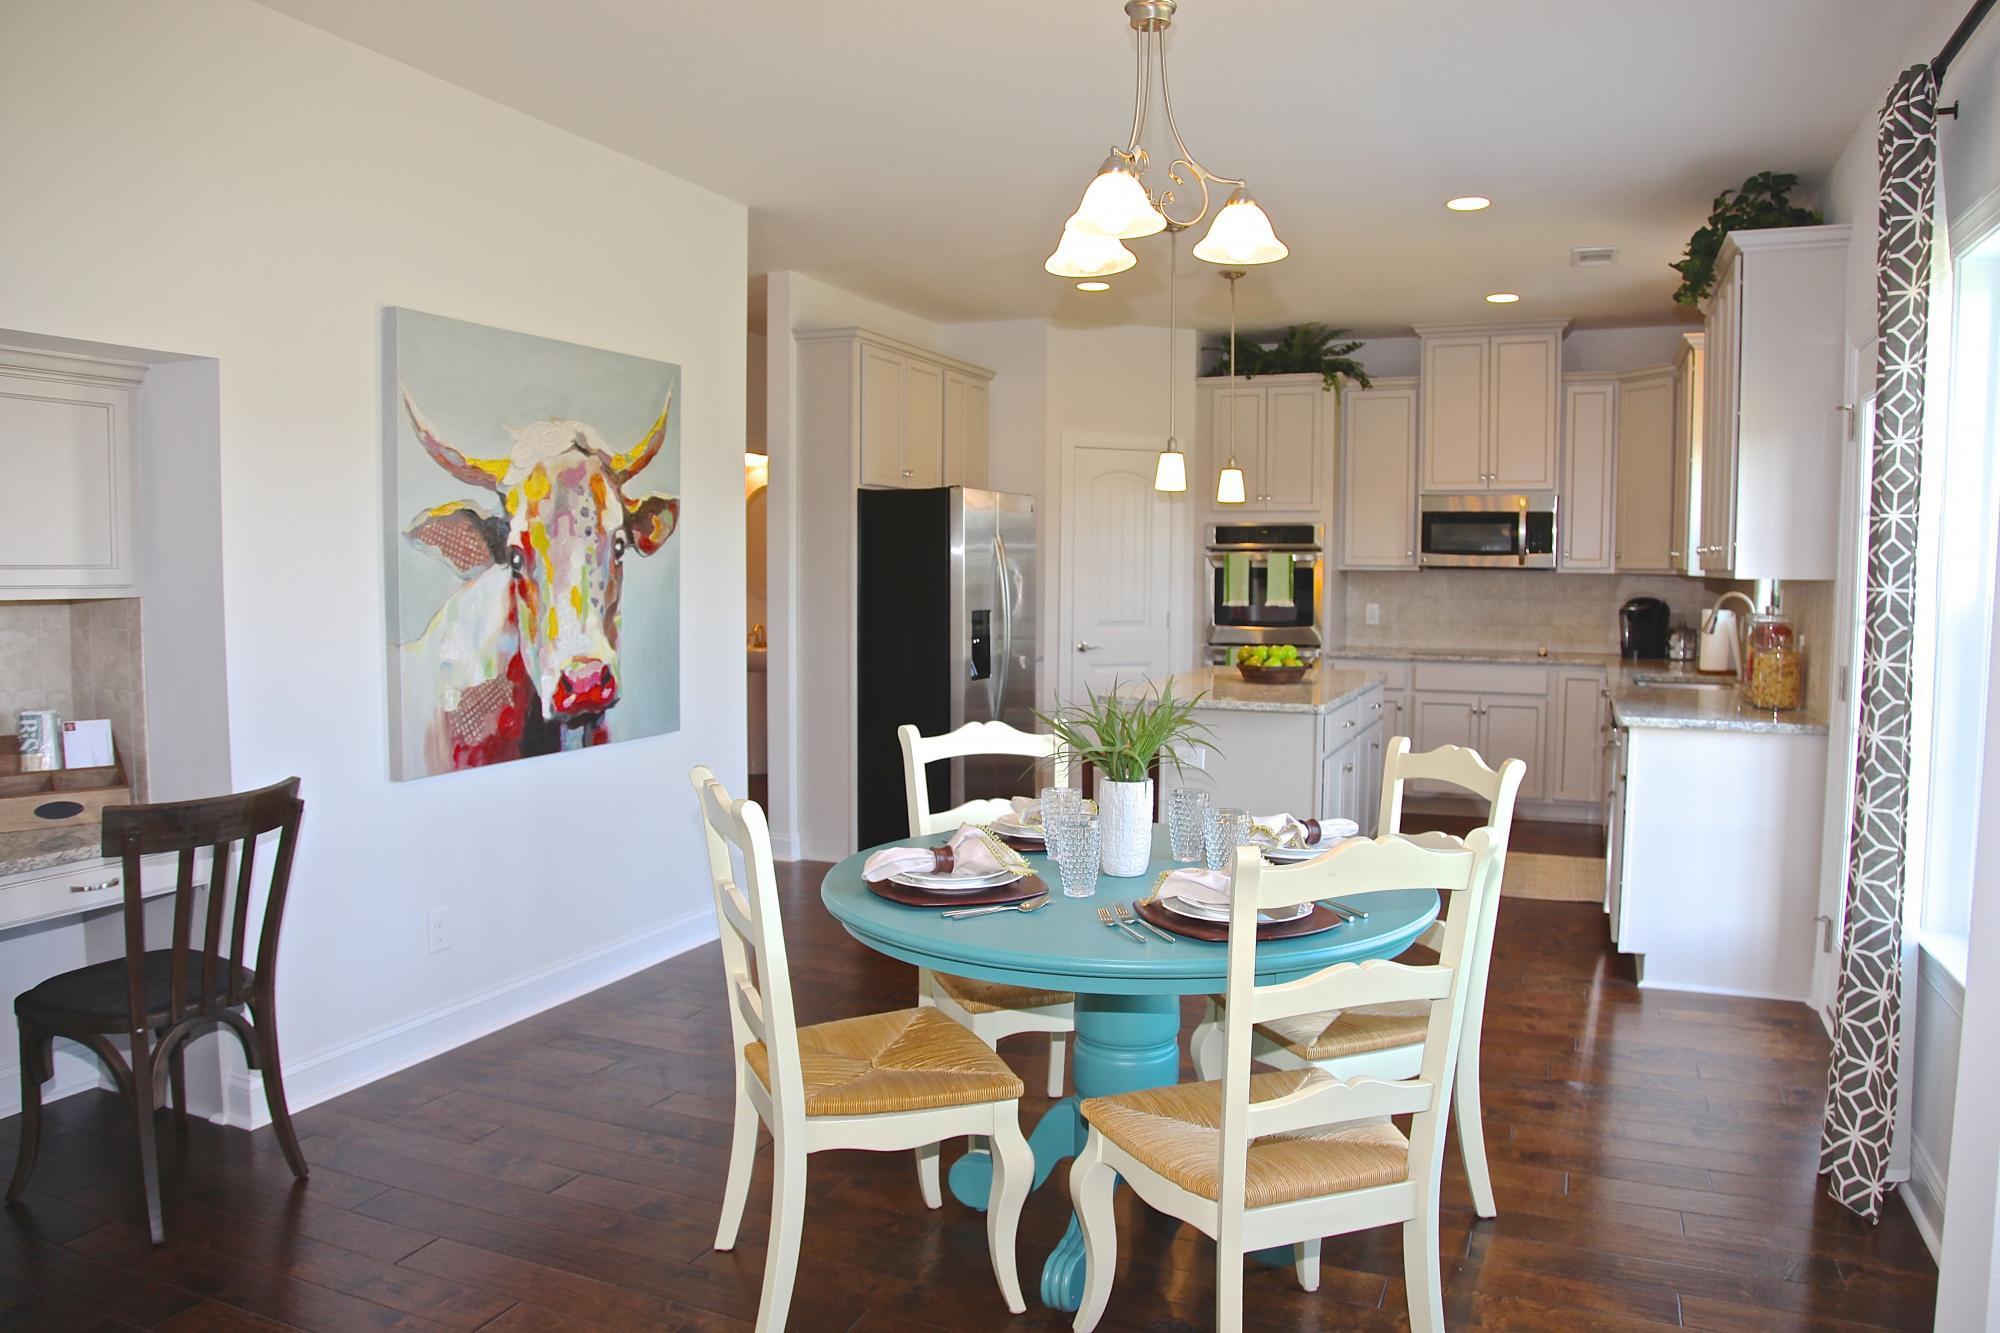 Kitchen featured in the Oglethorpe By Konter Quality Homes in Savannah, GA